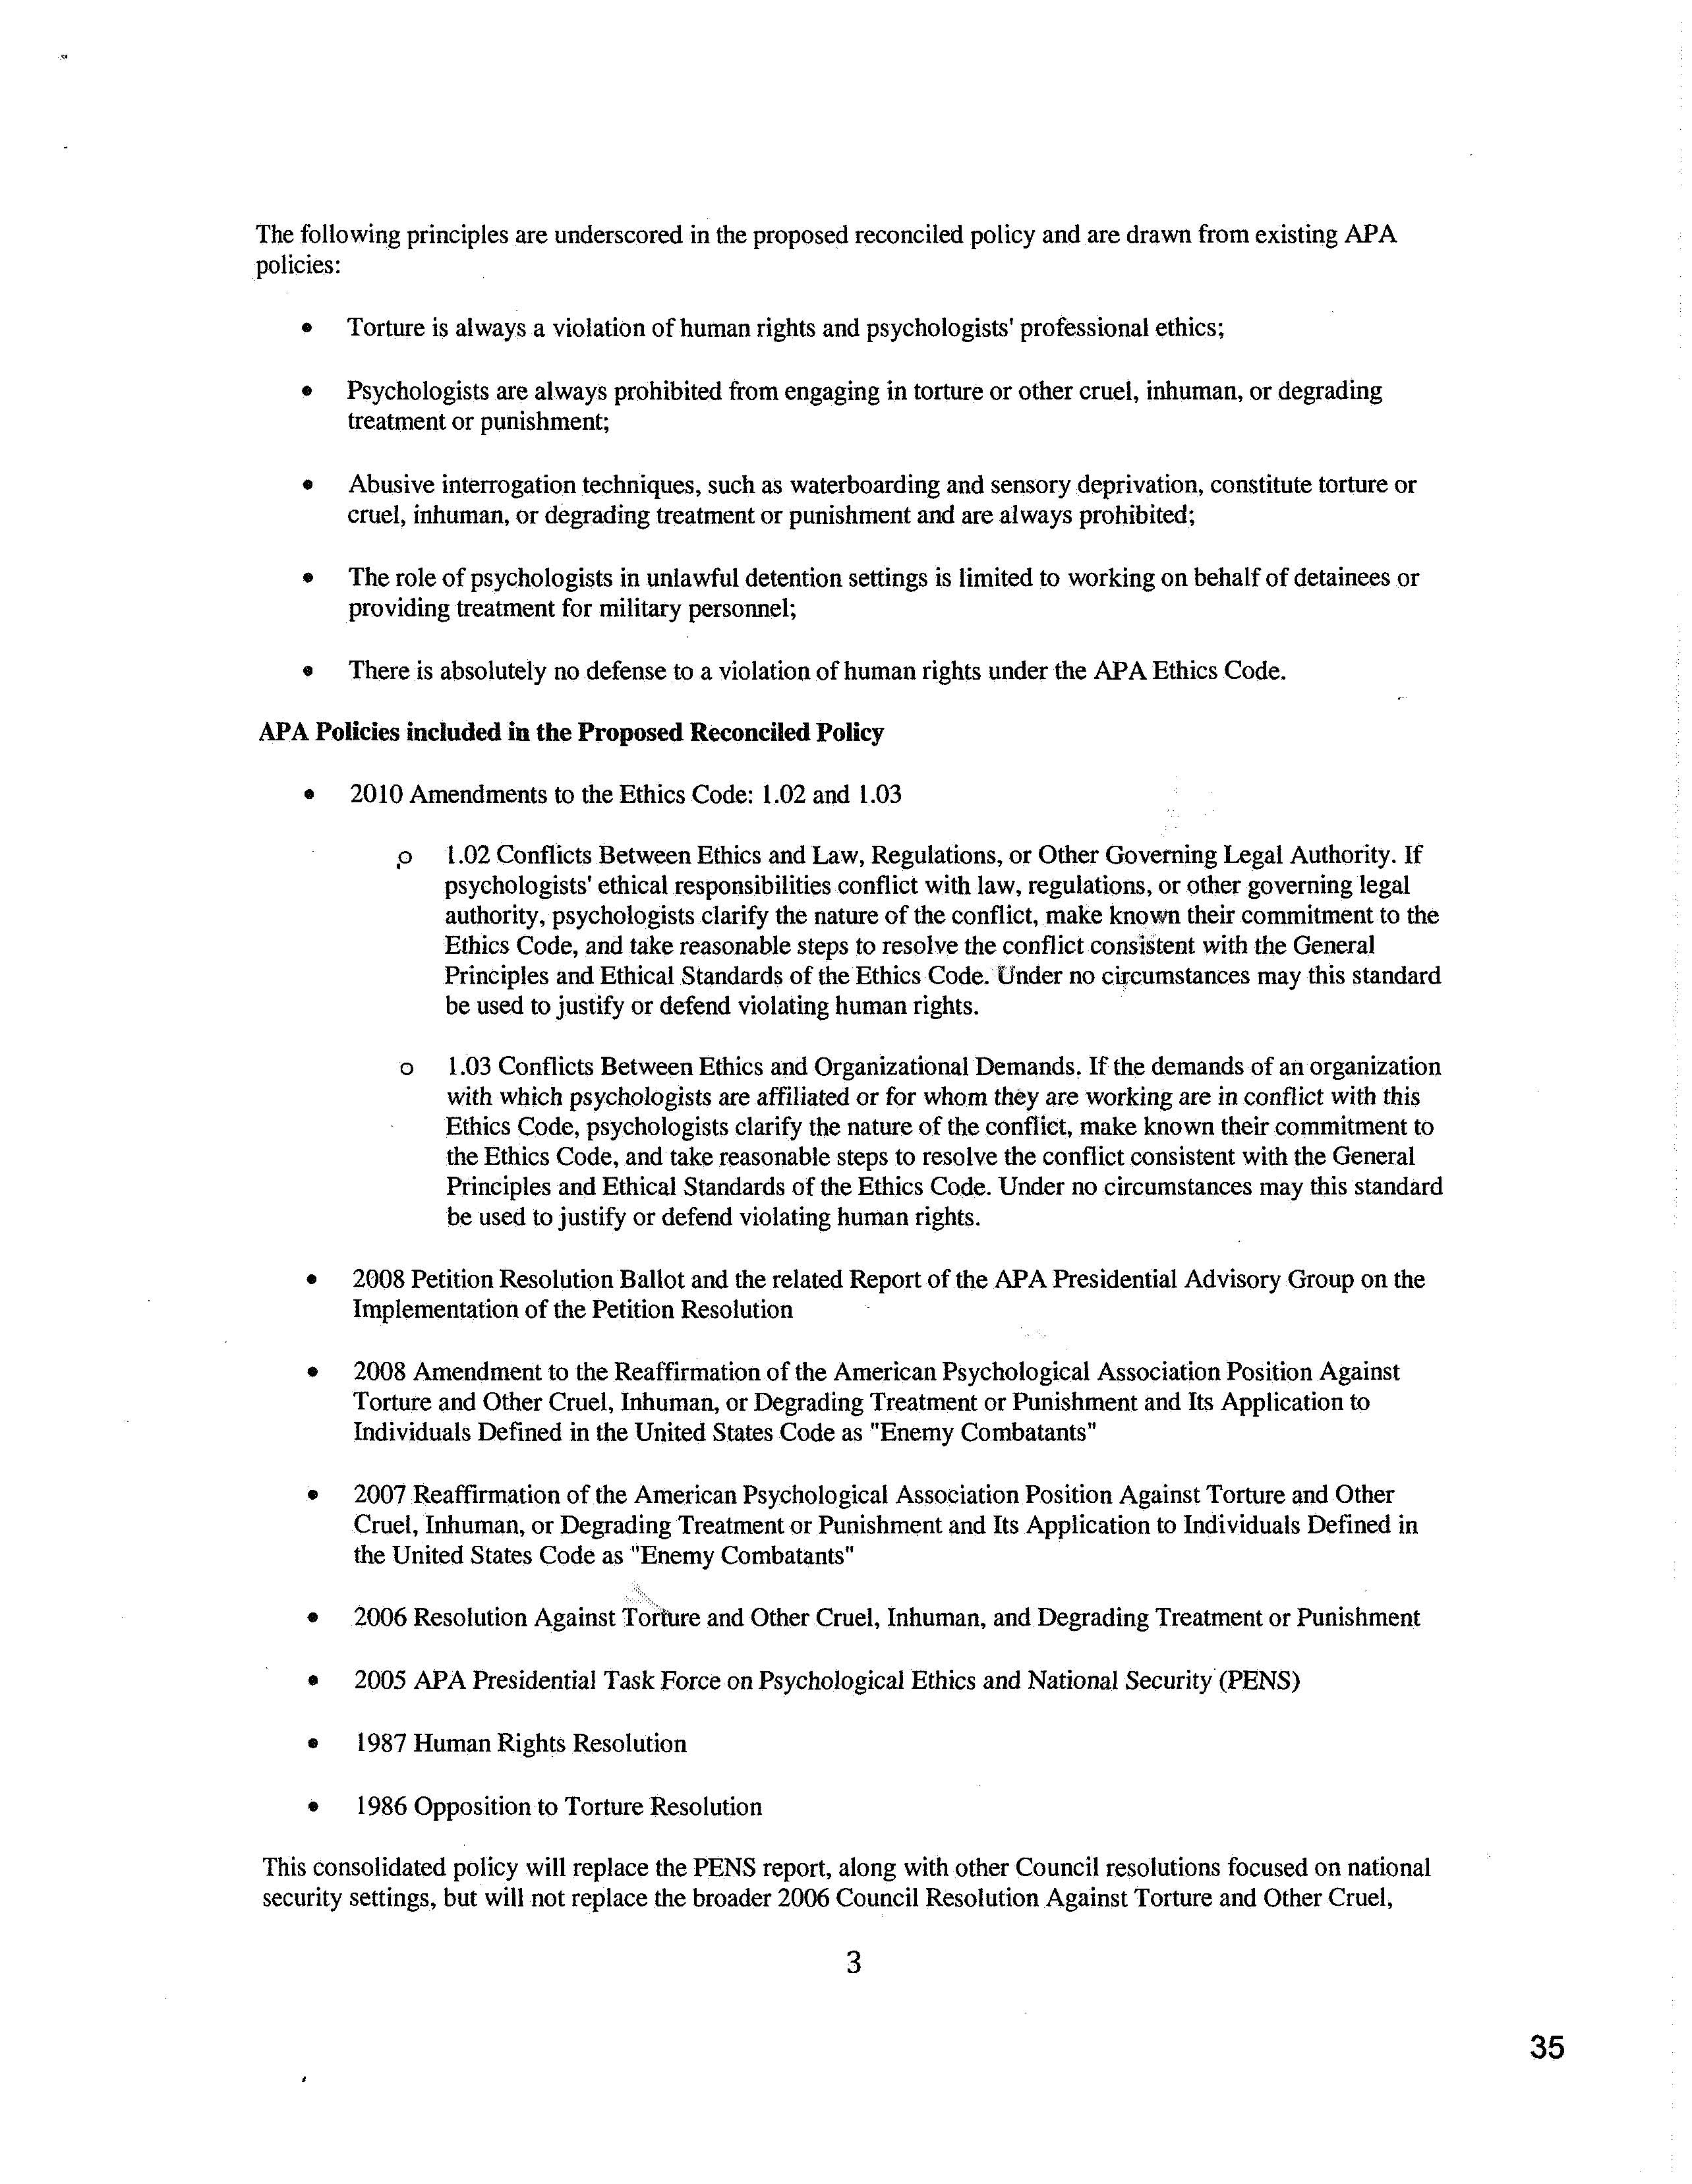 cor agenda action item 3 page 15 jpg policy related to psychologists work in national security settings and reaffirmation of the apa position against torture and other cruel inhuman